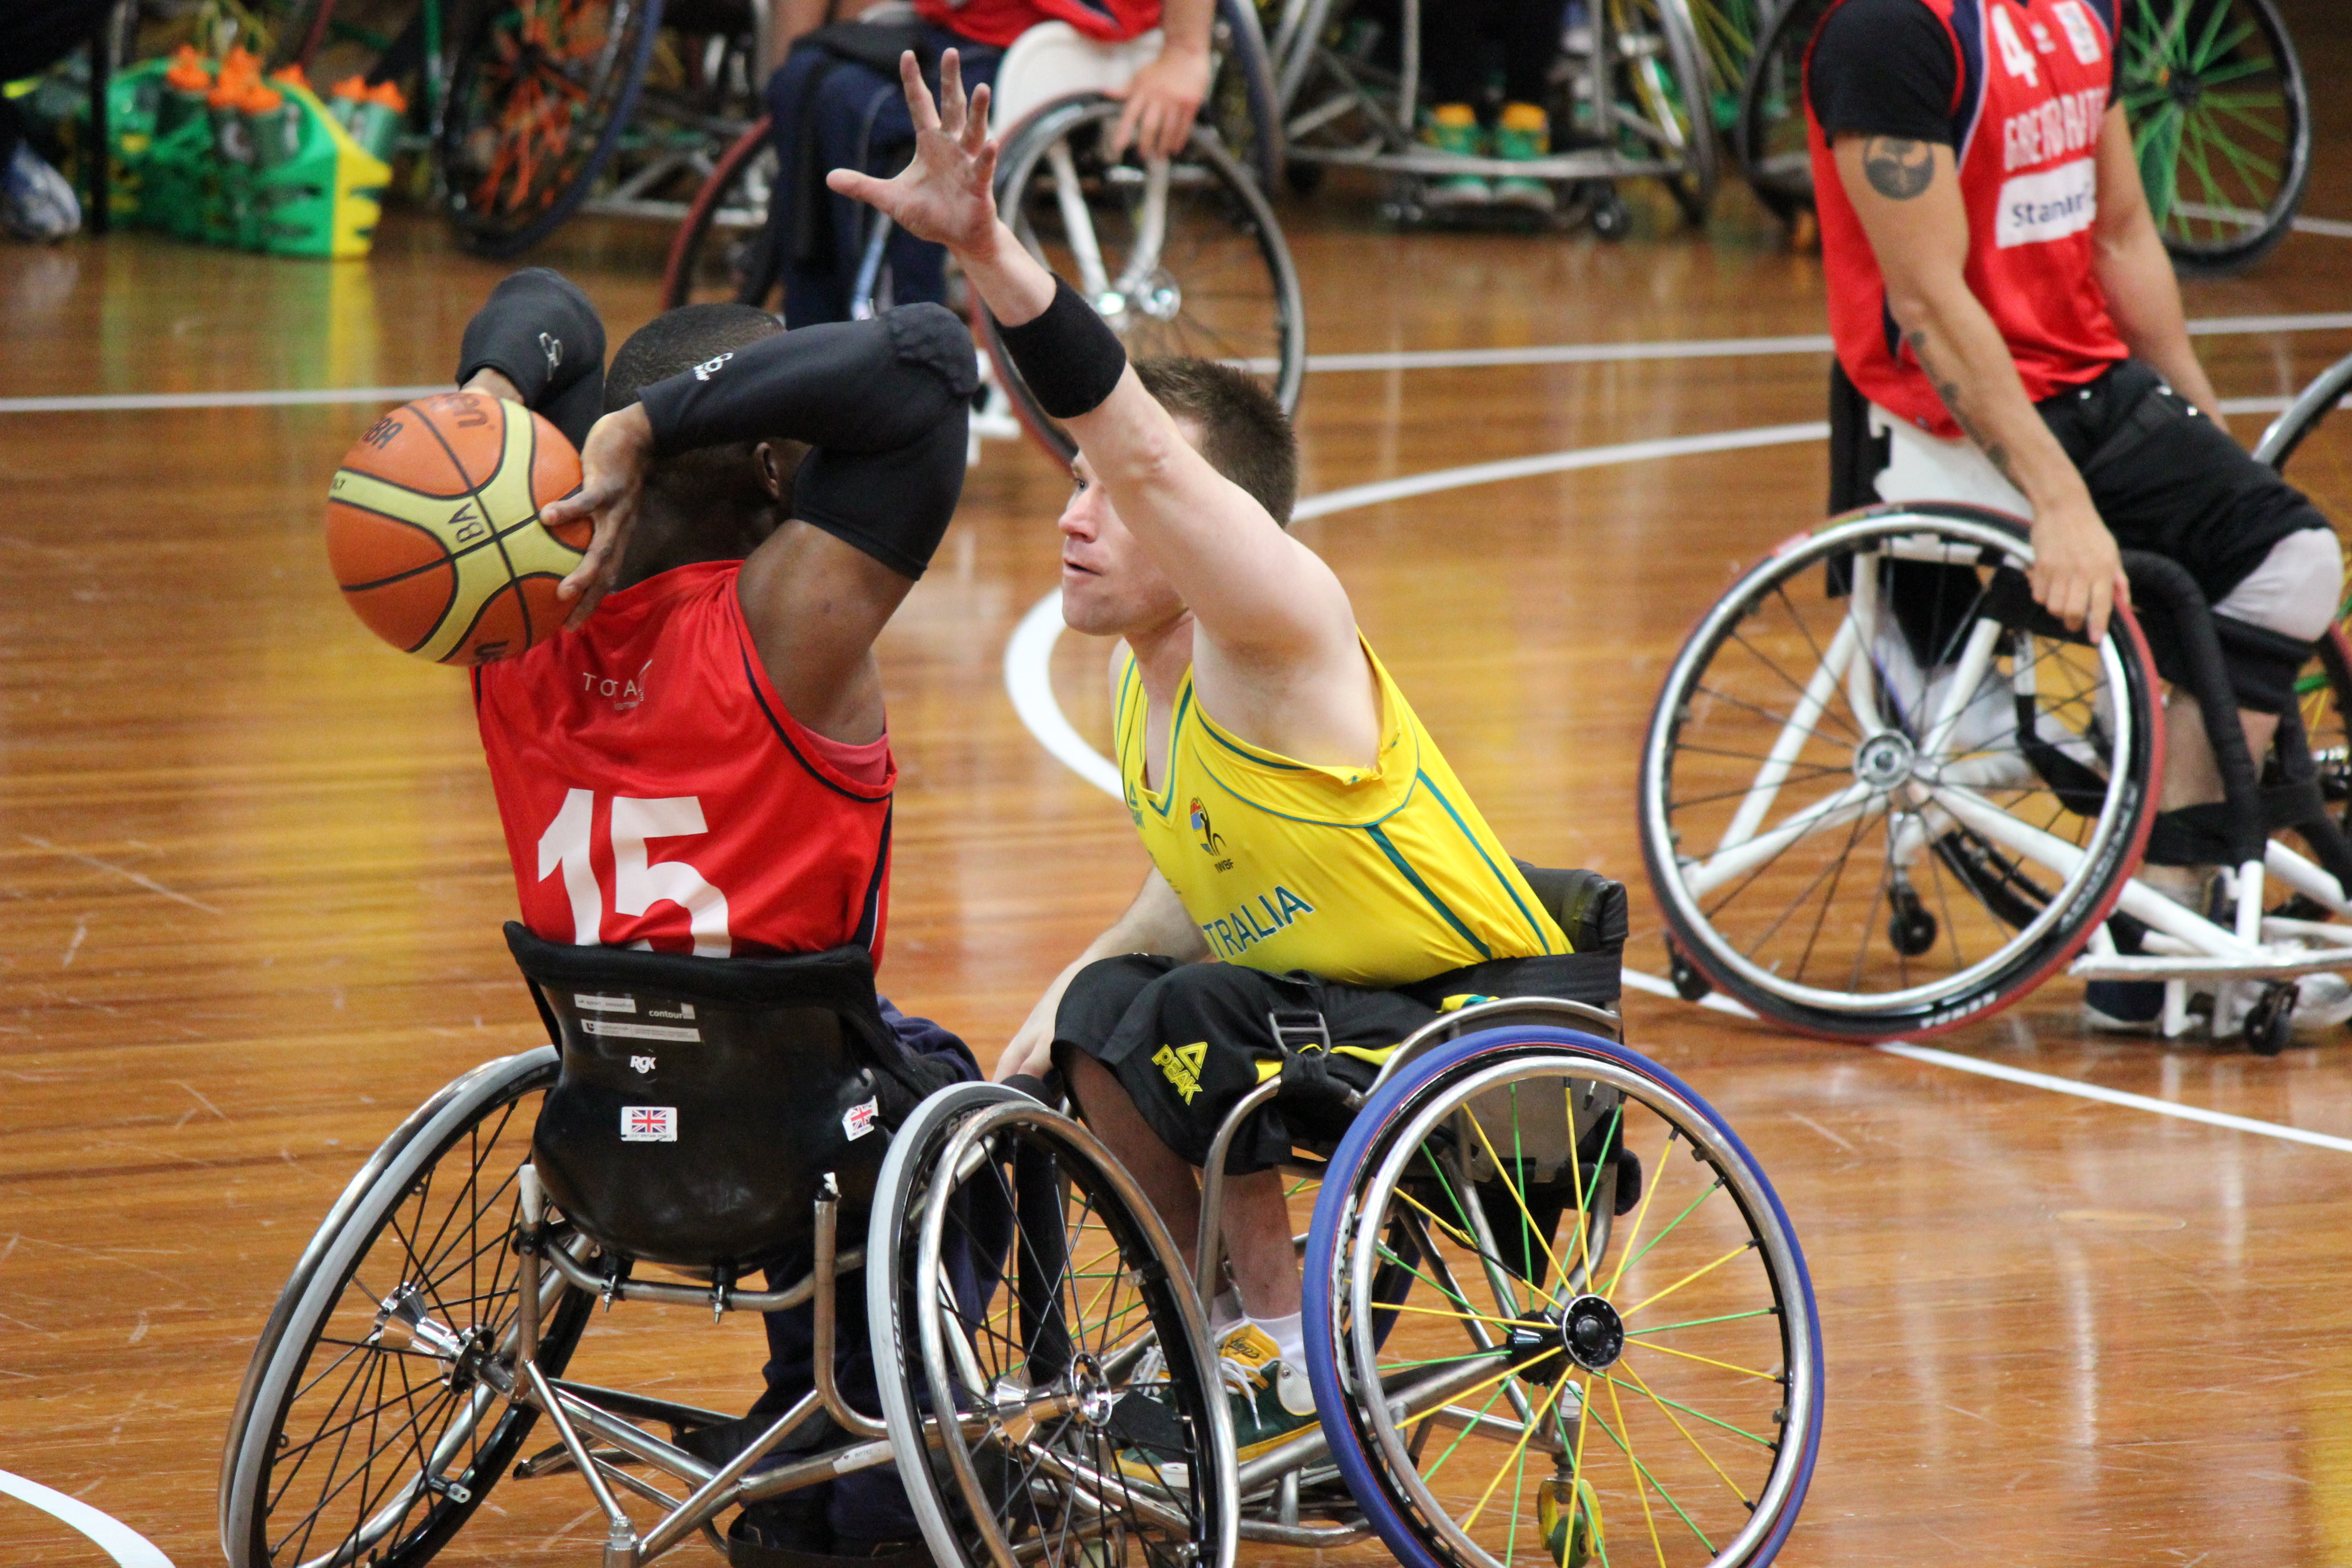 wheelchair dating australia Disabled dating sites australia dating can be difficult for most people, but dating while disabled can present even more of a challenge as a result, there are a number of sites available to help people with special needs who are also looking for love and companionship.